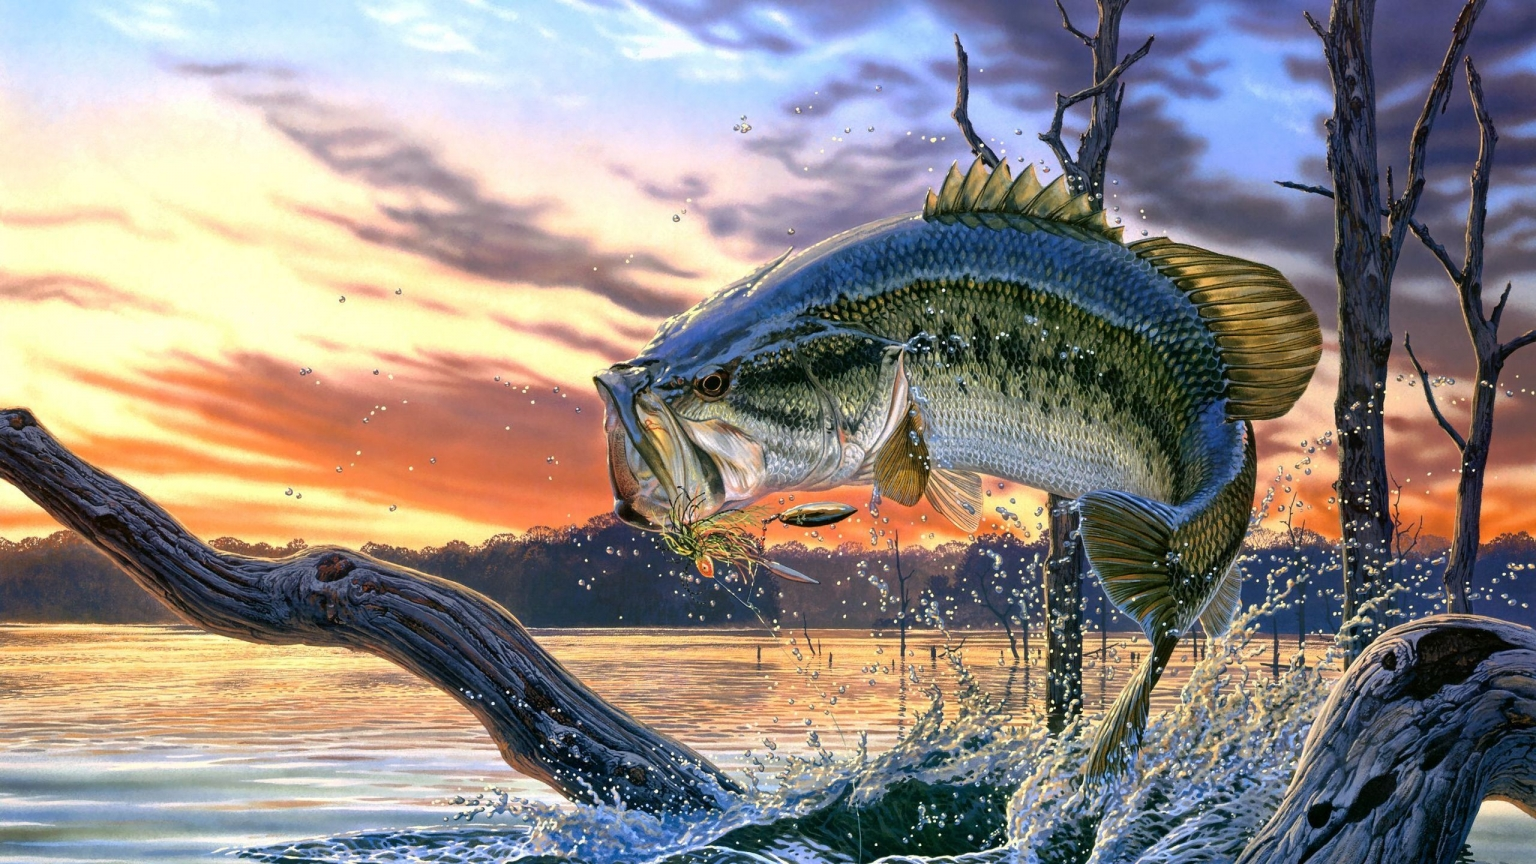 Fantasy Scary Fish for 1536 x 864 HDTV resolution